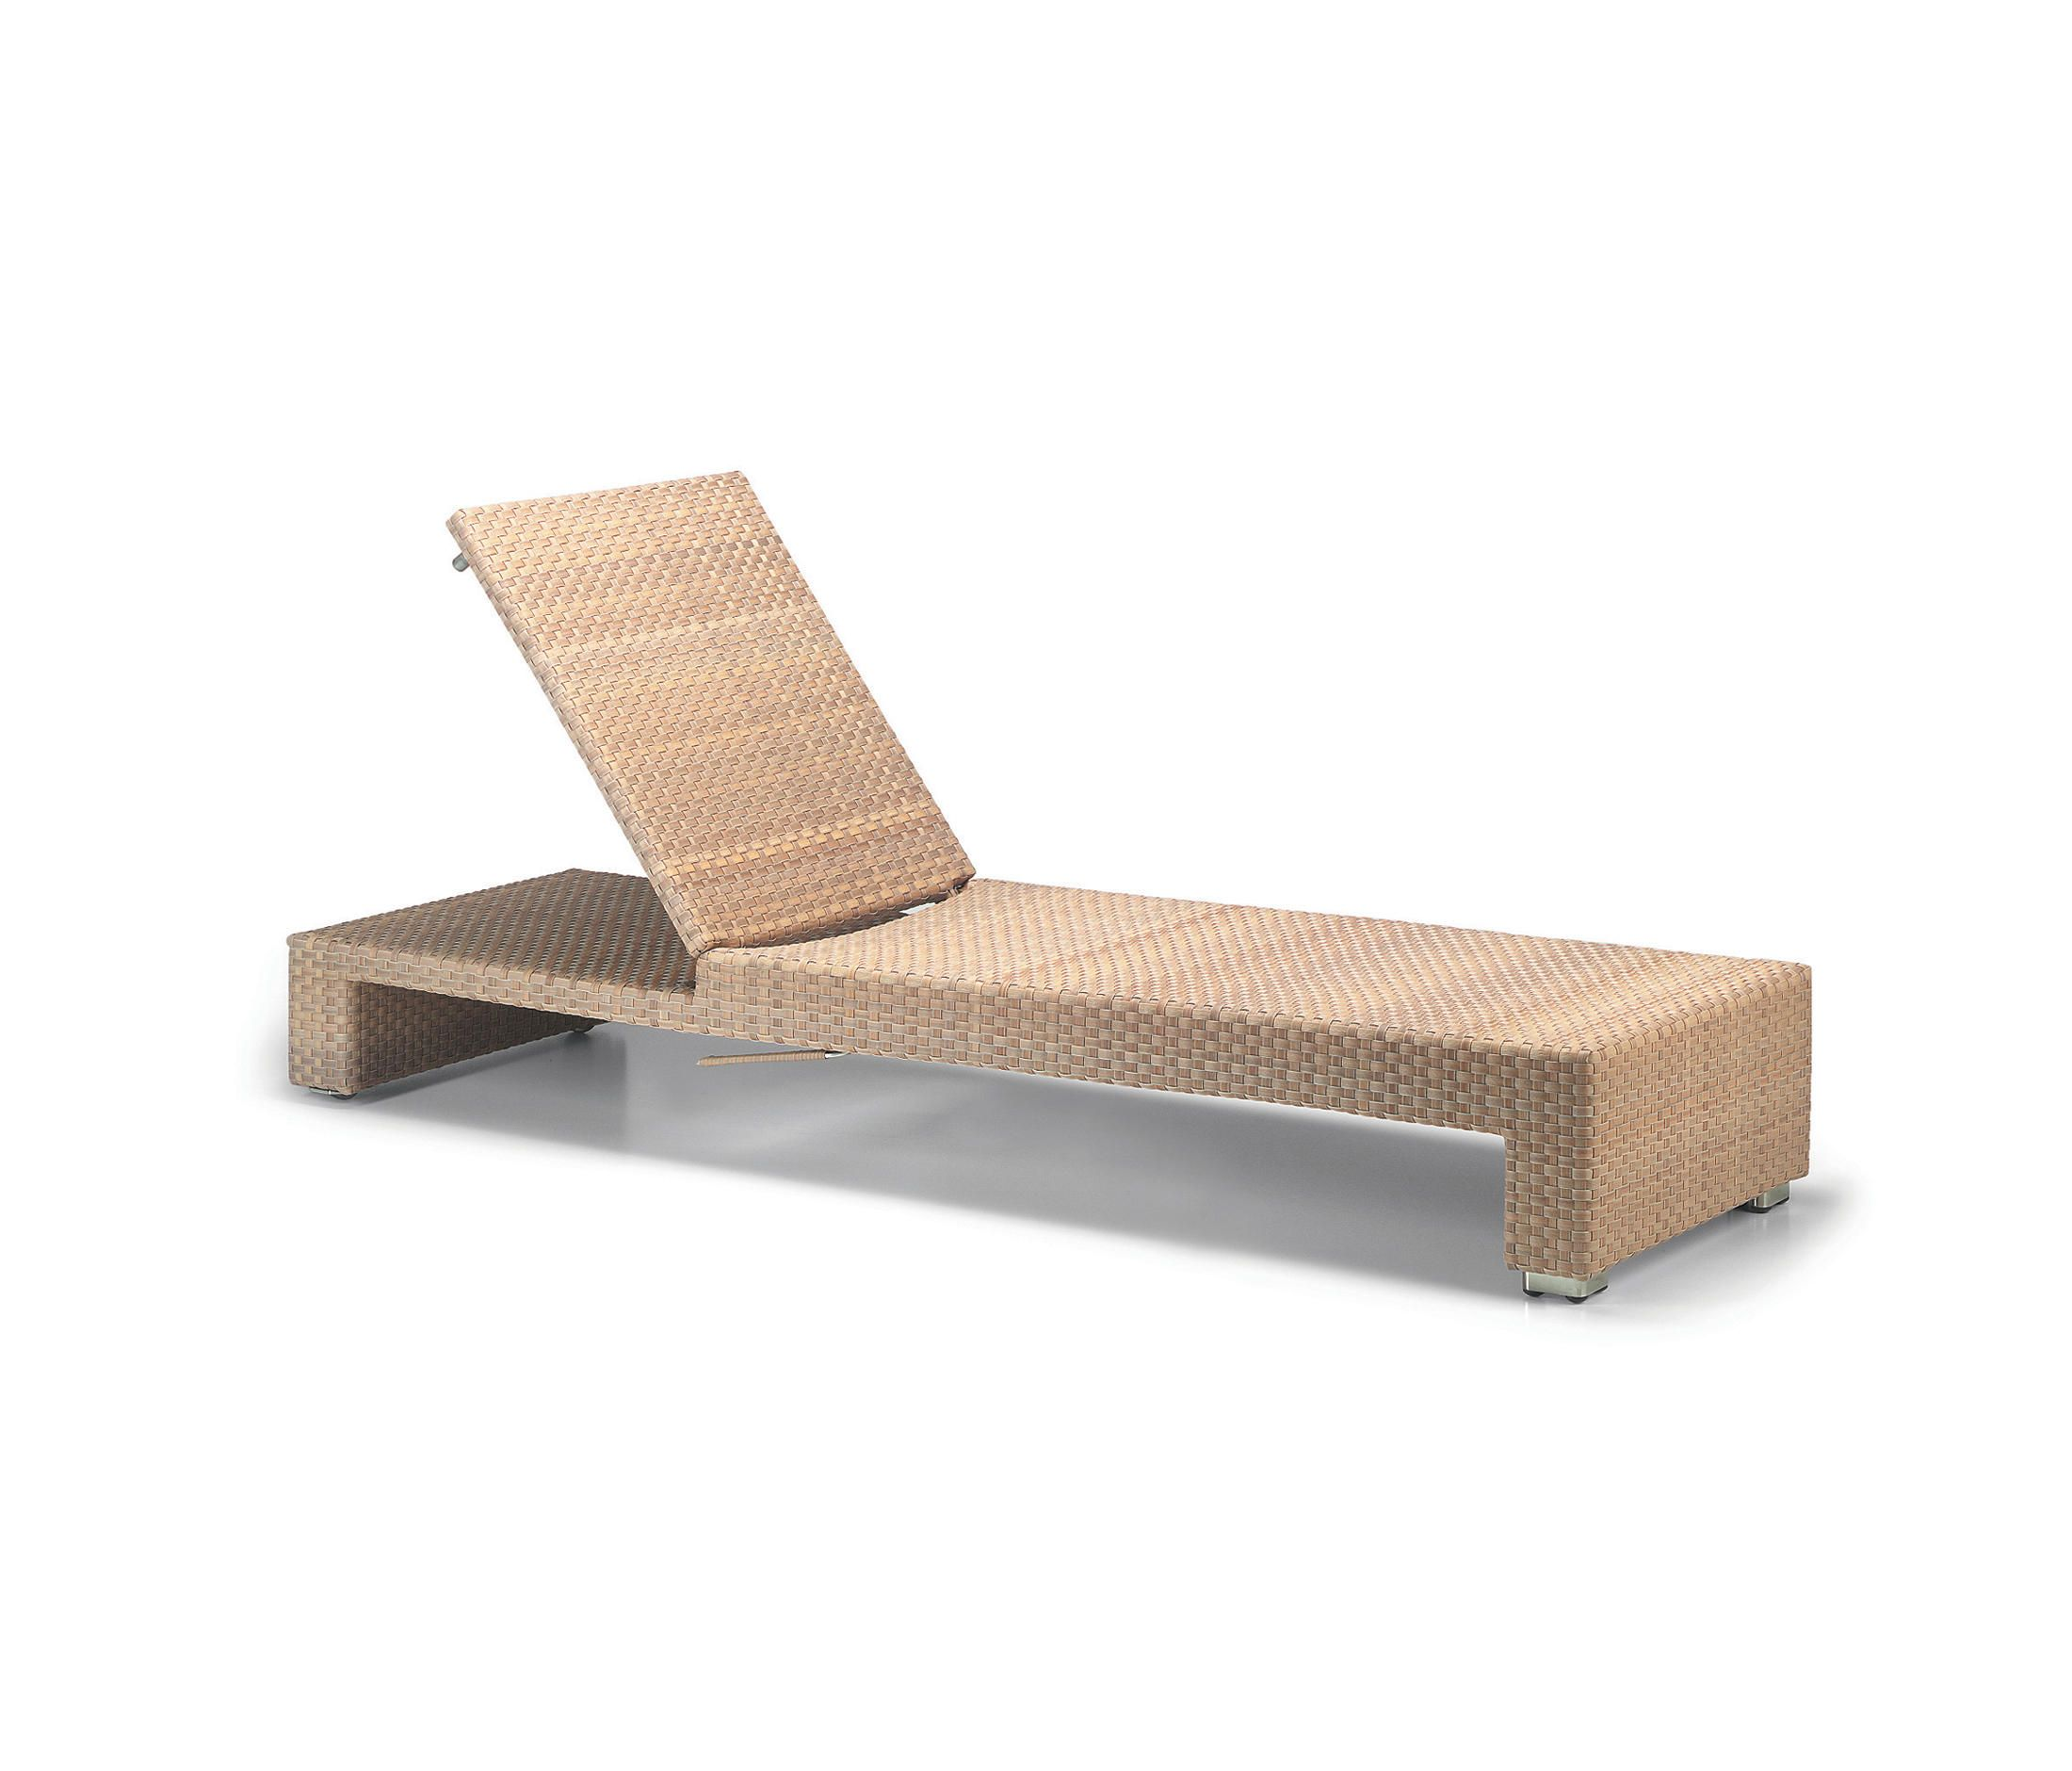 La Chaise Longue Catalogue Lounge Beachchair Designer Sun Loungers From Dedon All